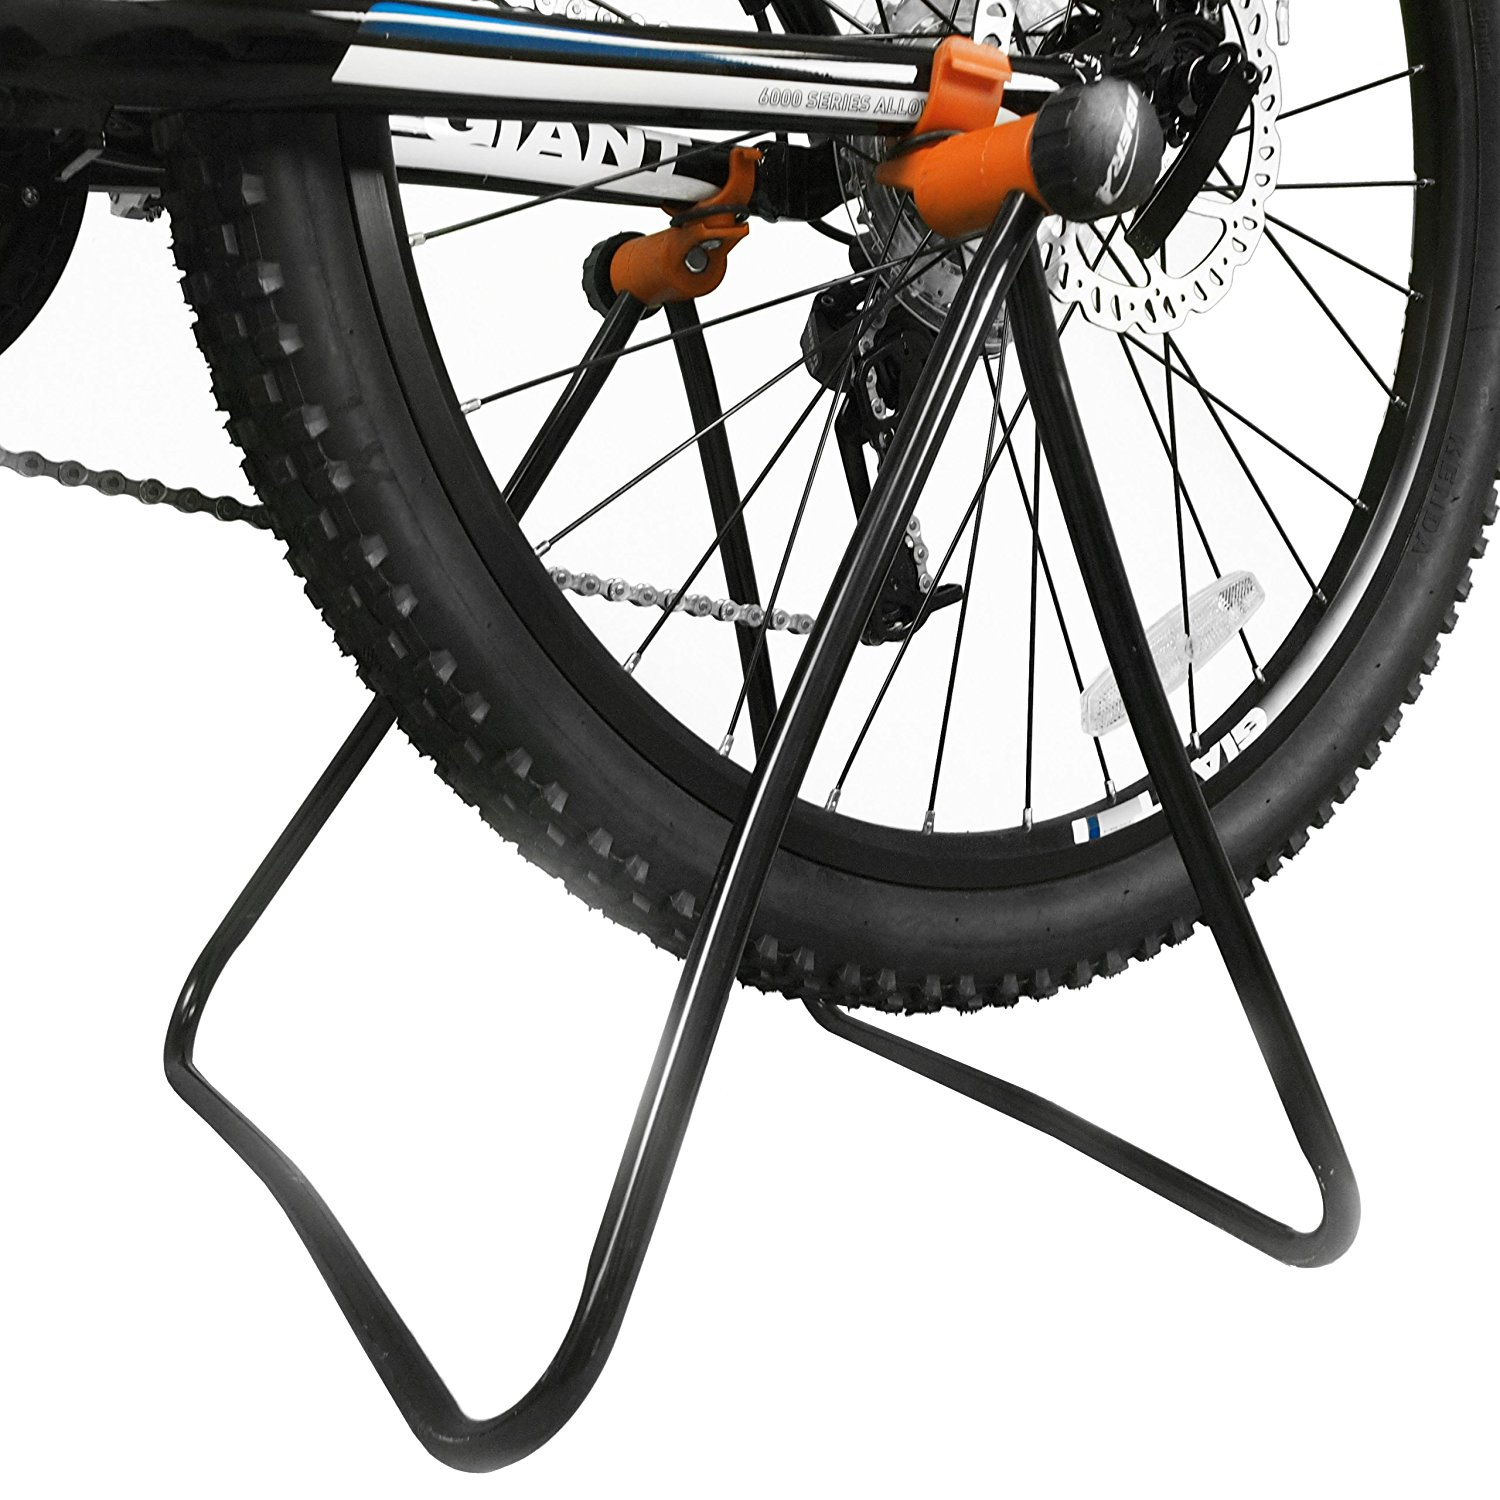 Amazon.com: Ibera Easy Utility Bicycle Stand, Adjustable Height ...